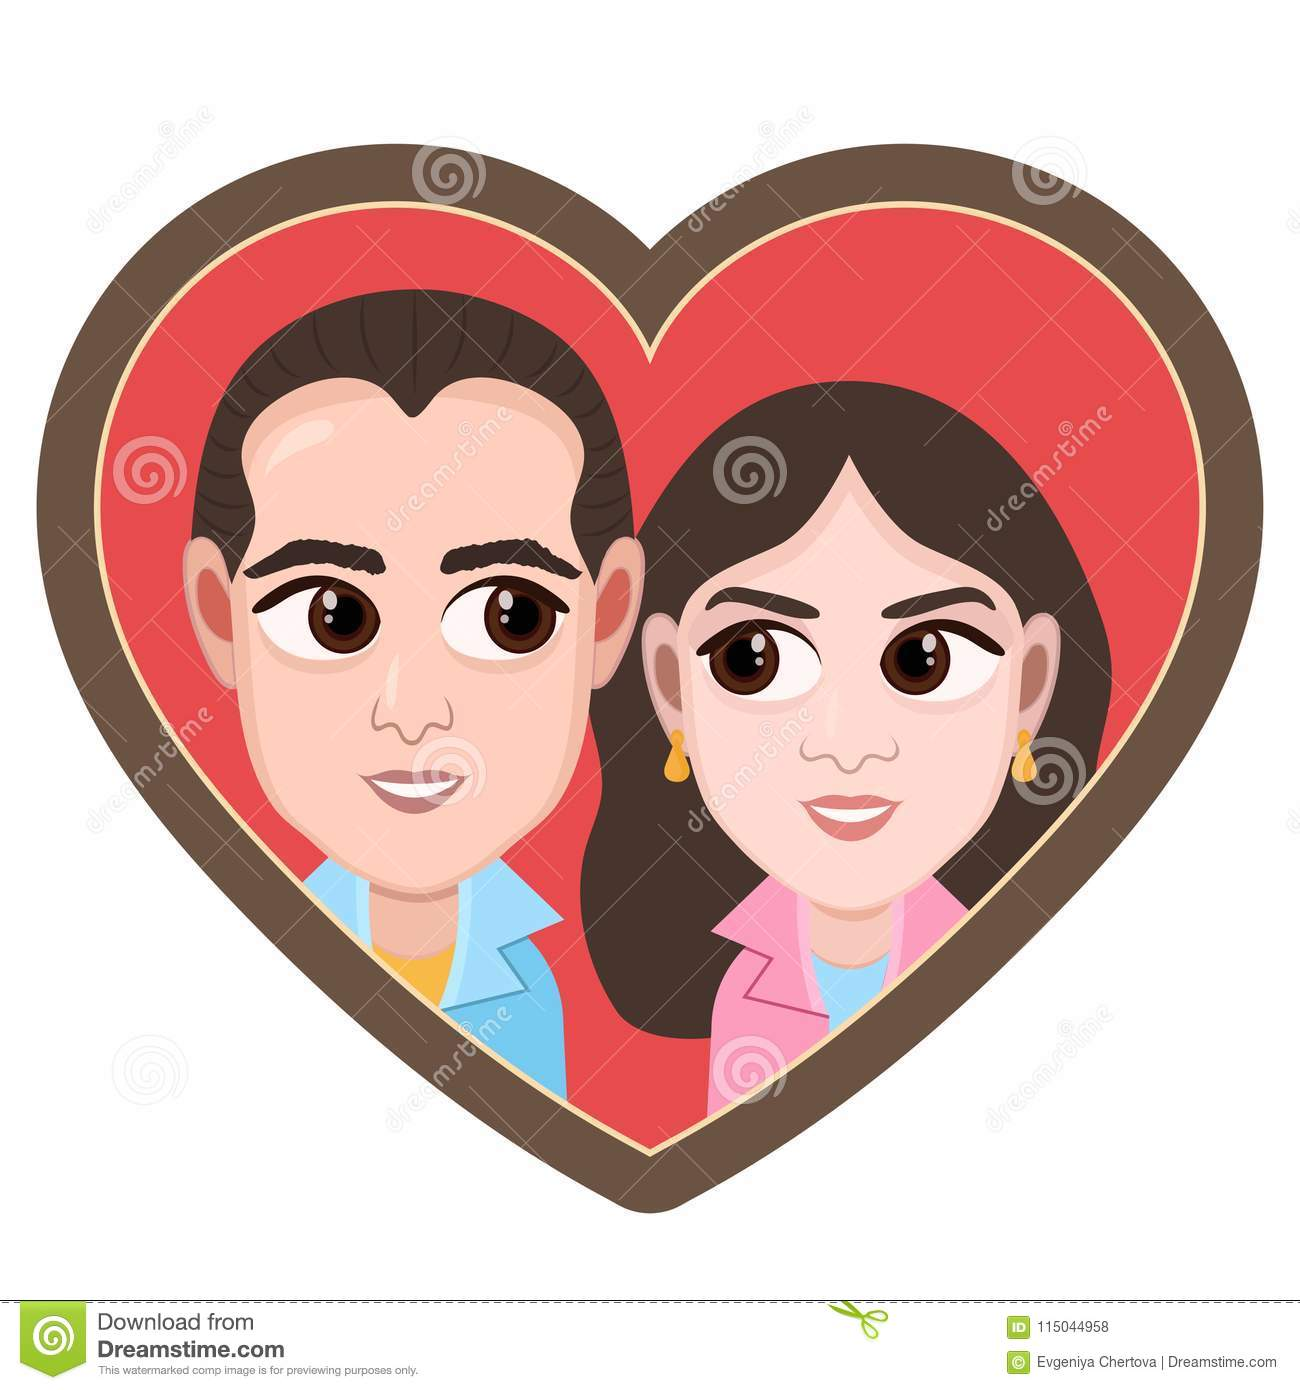 Download Cartoon Character Vector Drawing Portrait Lovers Couple Boy And Girl Icon Sticker